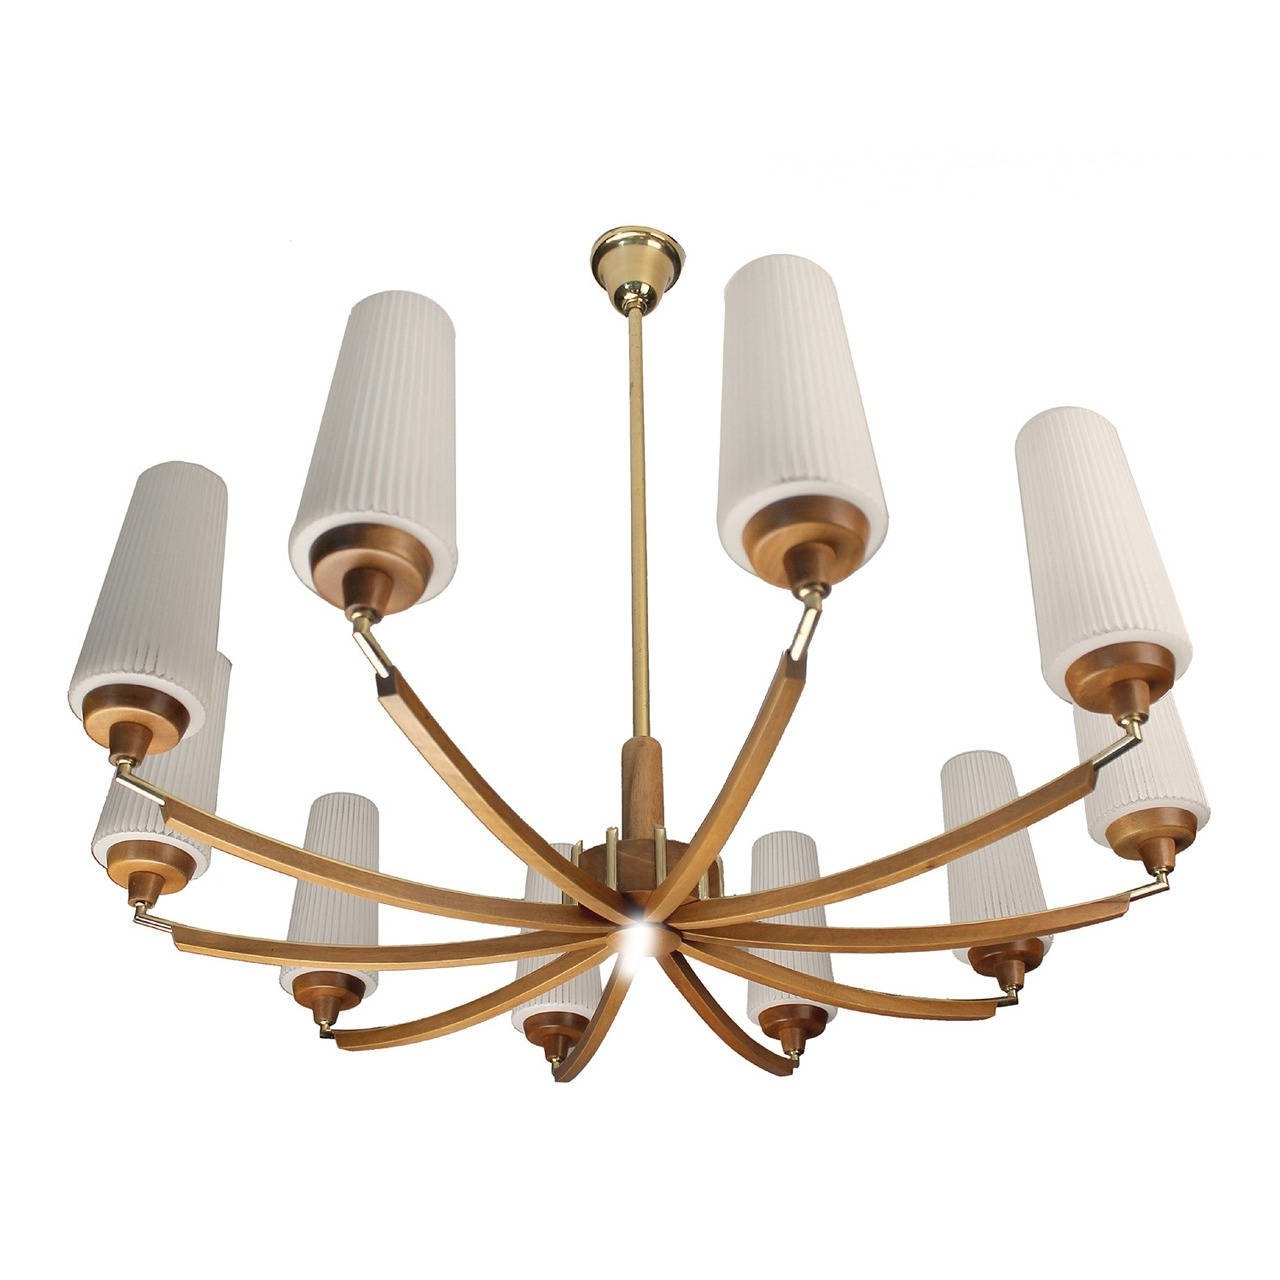 2019 Italian Wood And Brass Chandelier Glass Ceiling Fixture Mid Century Intended For Brass And Glass Chandelier (View 3 of 20)